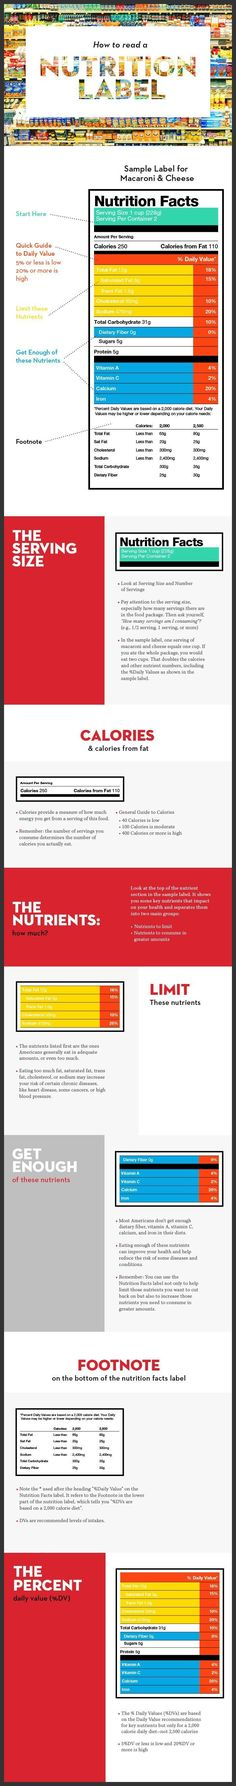 How to Read a Nutrition Label #nutrition101